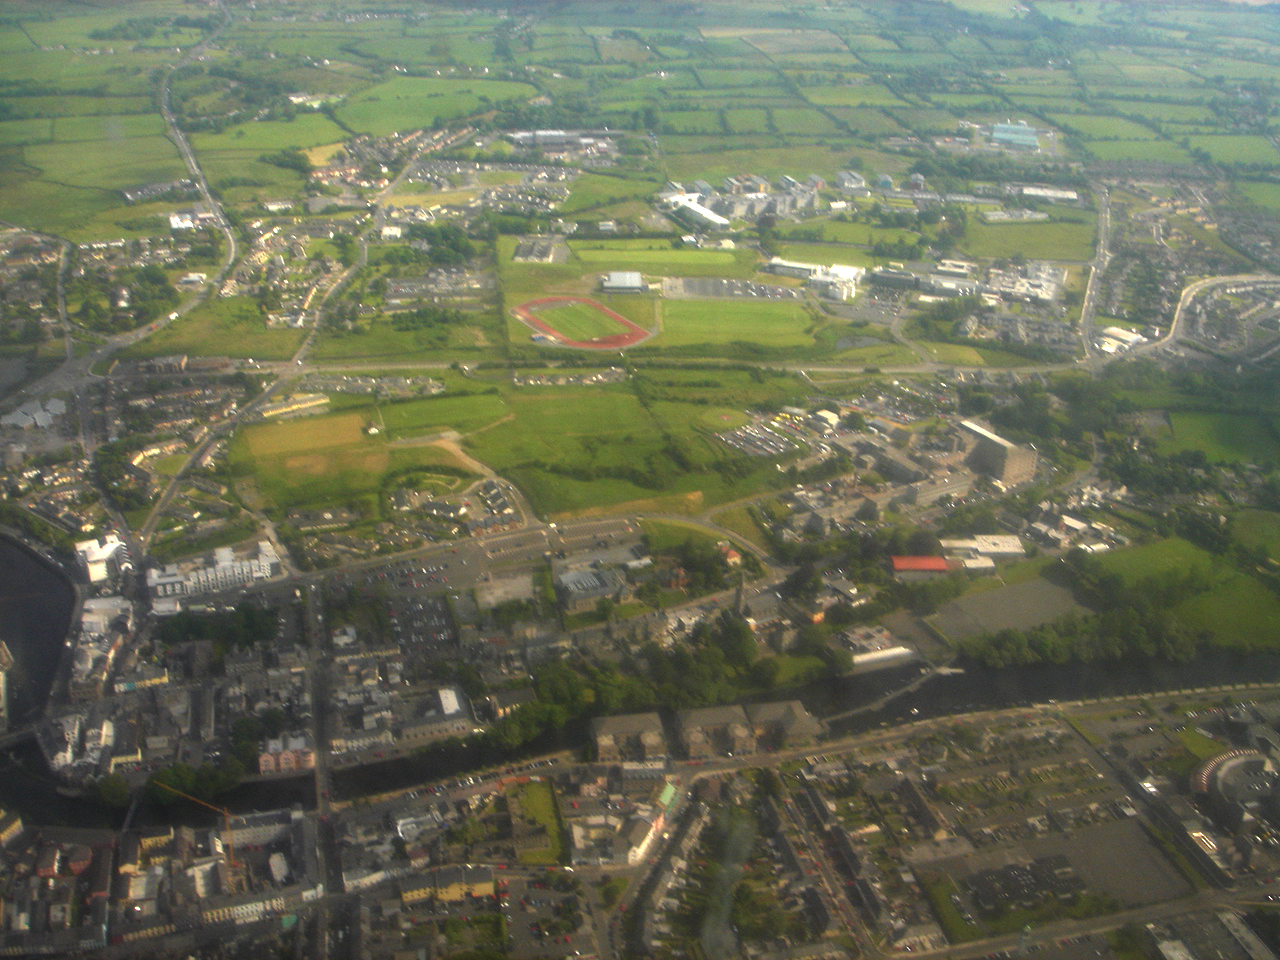 Sligo Ireland  city images : North Sligo Town Wikipedia, the free encyclopedia